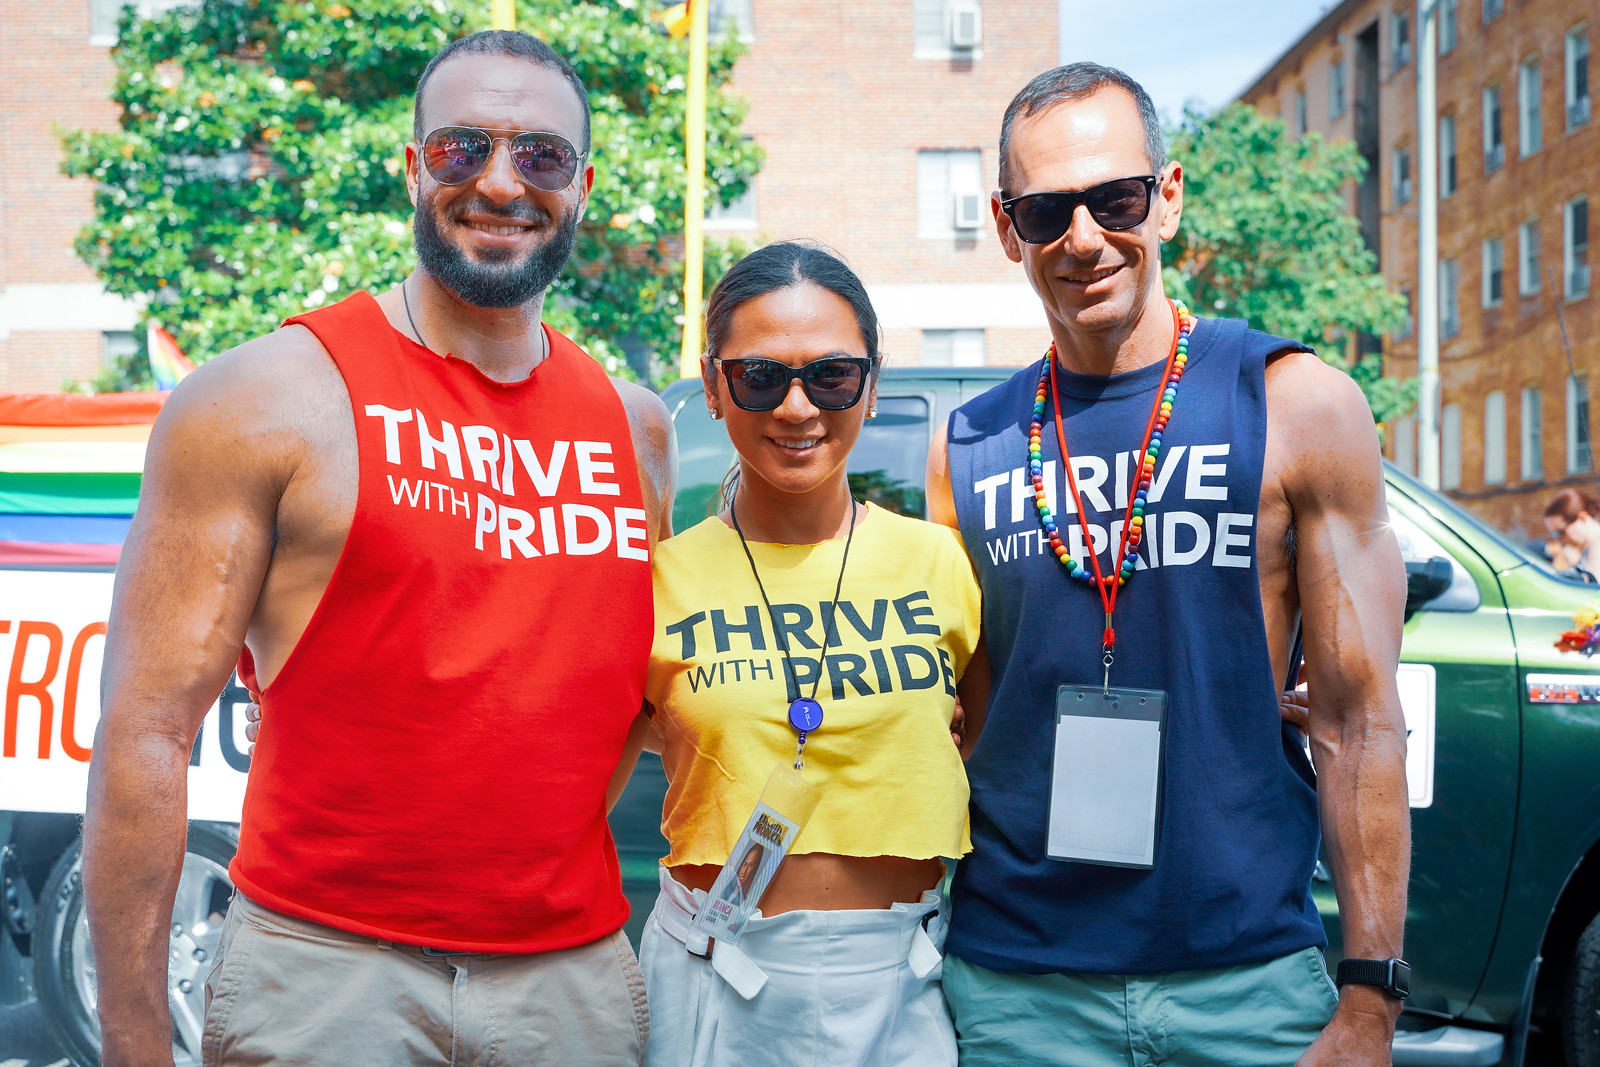 2019.06.08 Capital Pride Parade, Washington, DC USA 1590004